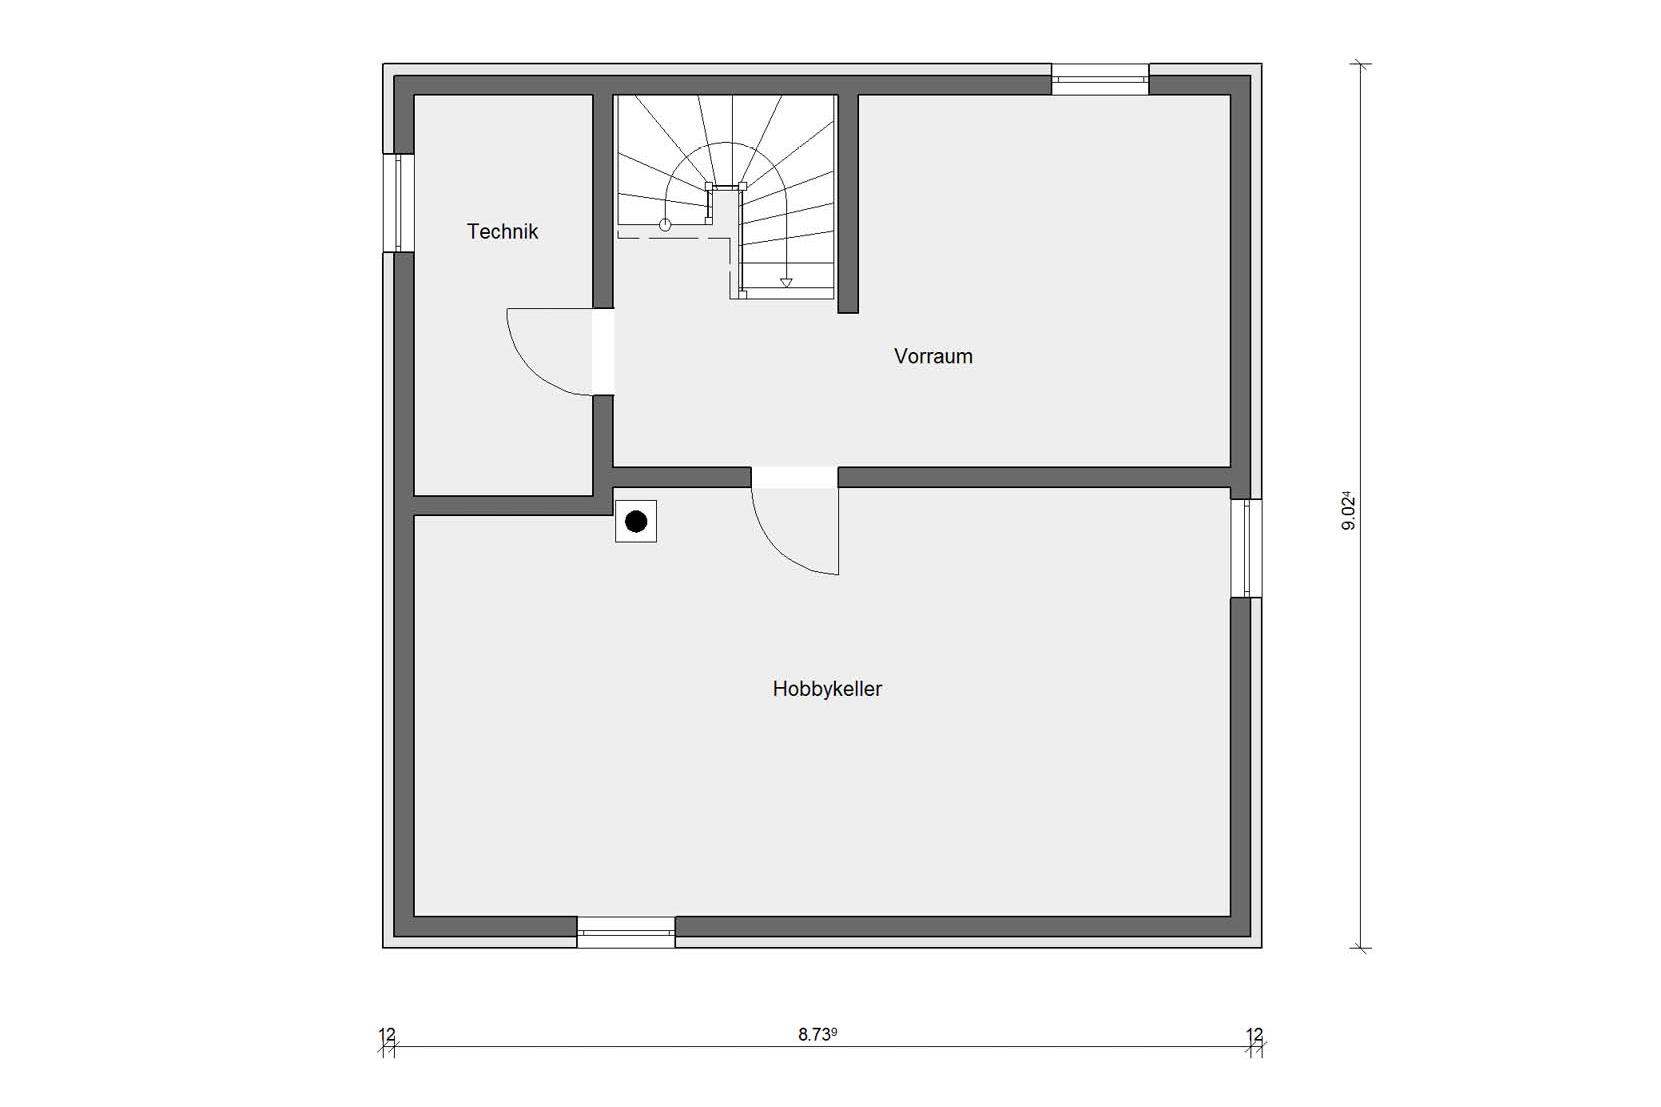 Floor plan basement prefabricated house with tent roof E 20-135.1